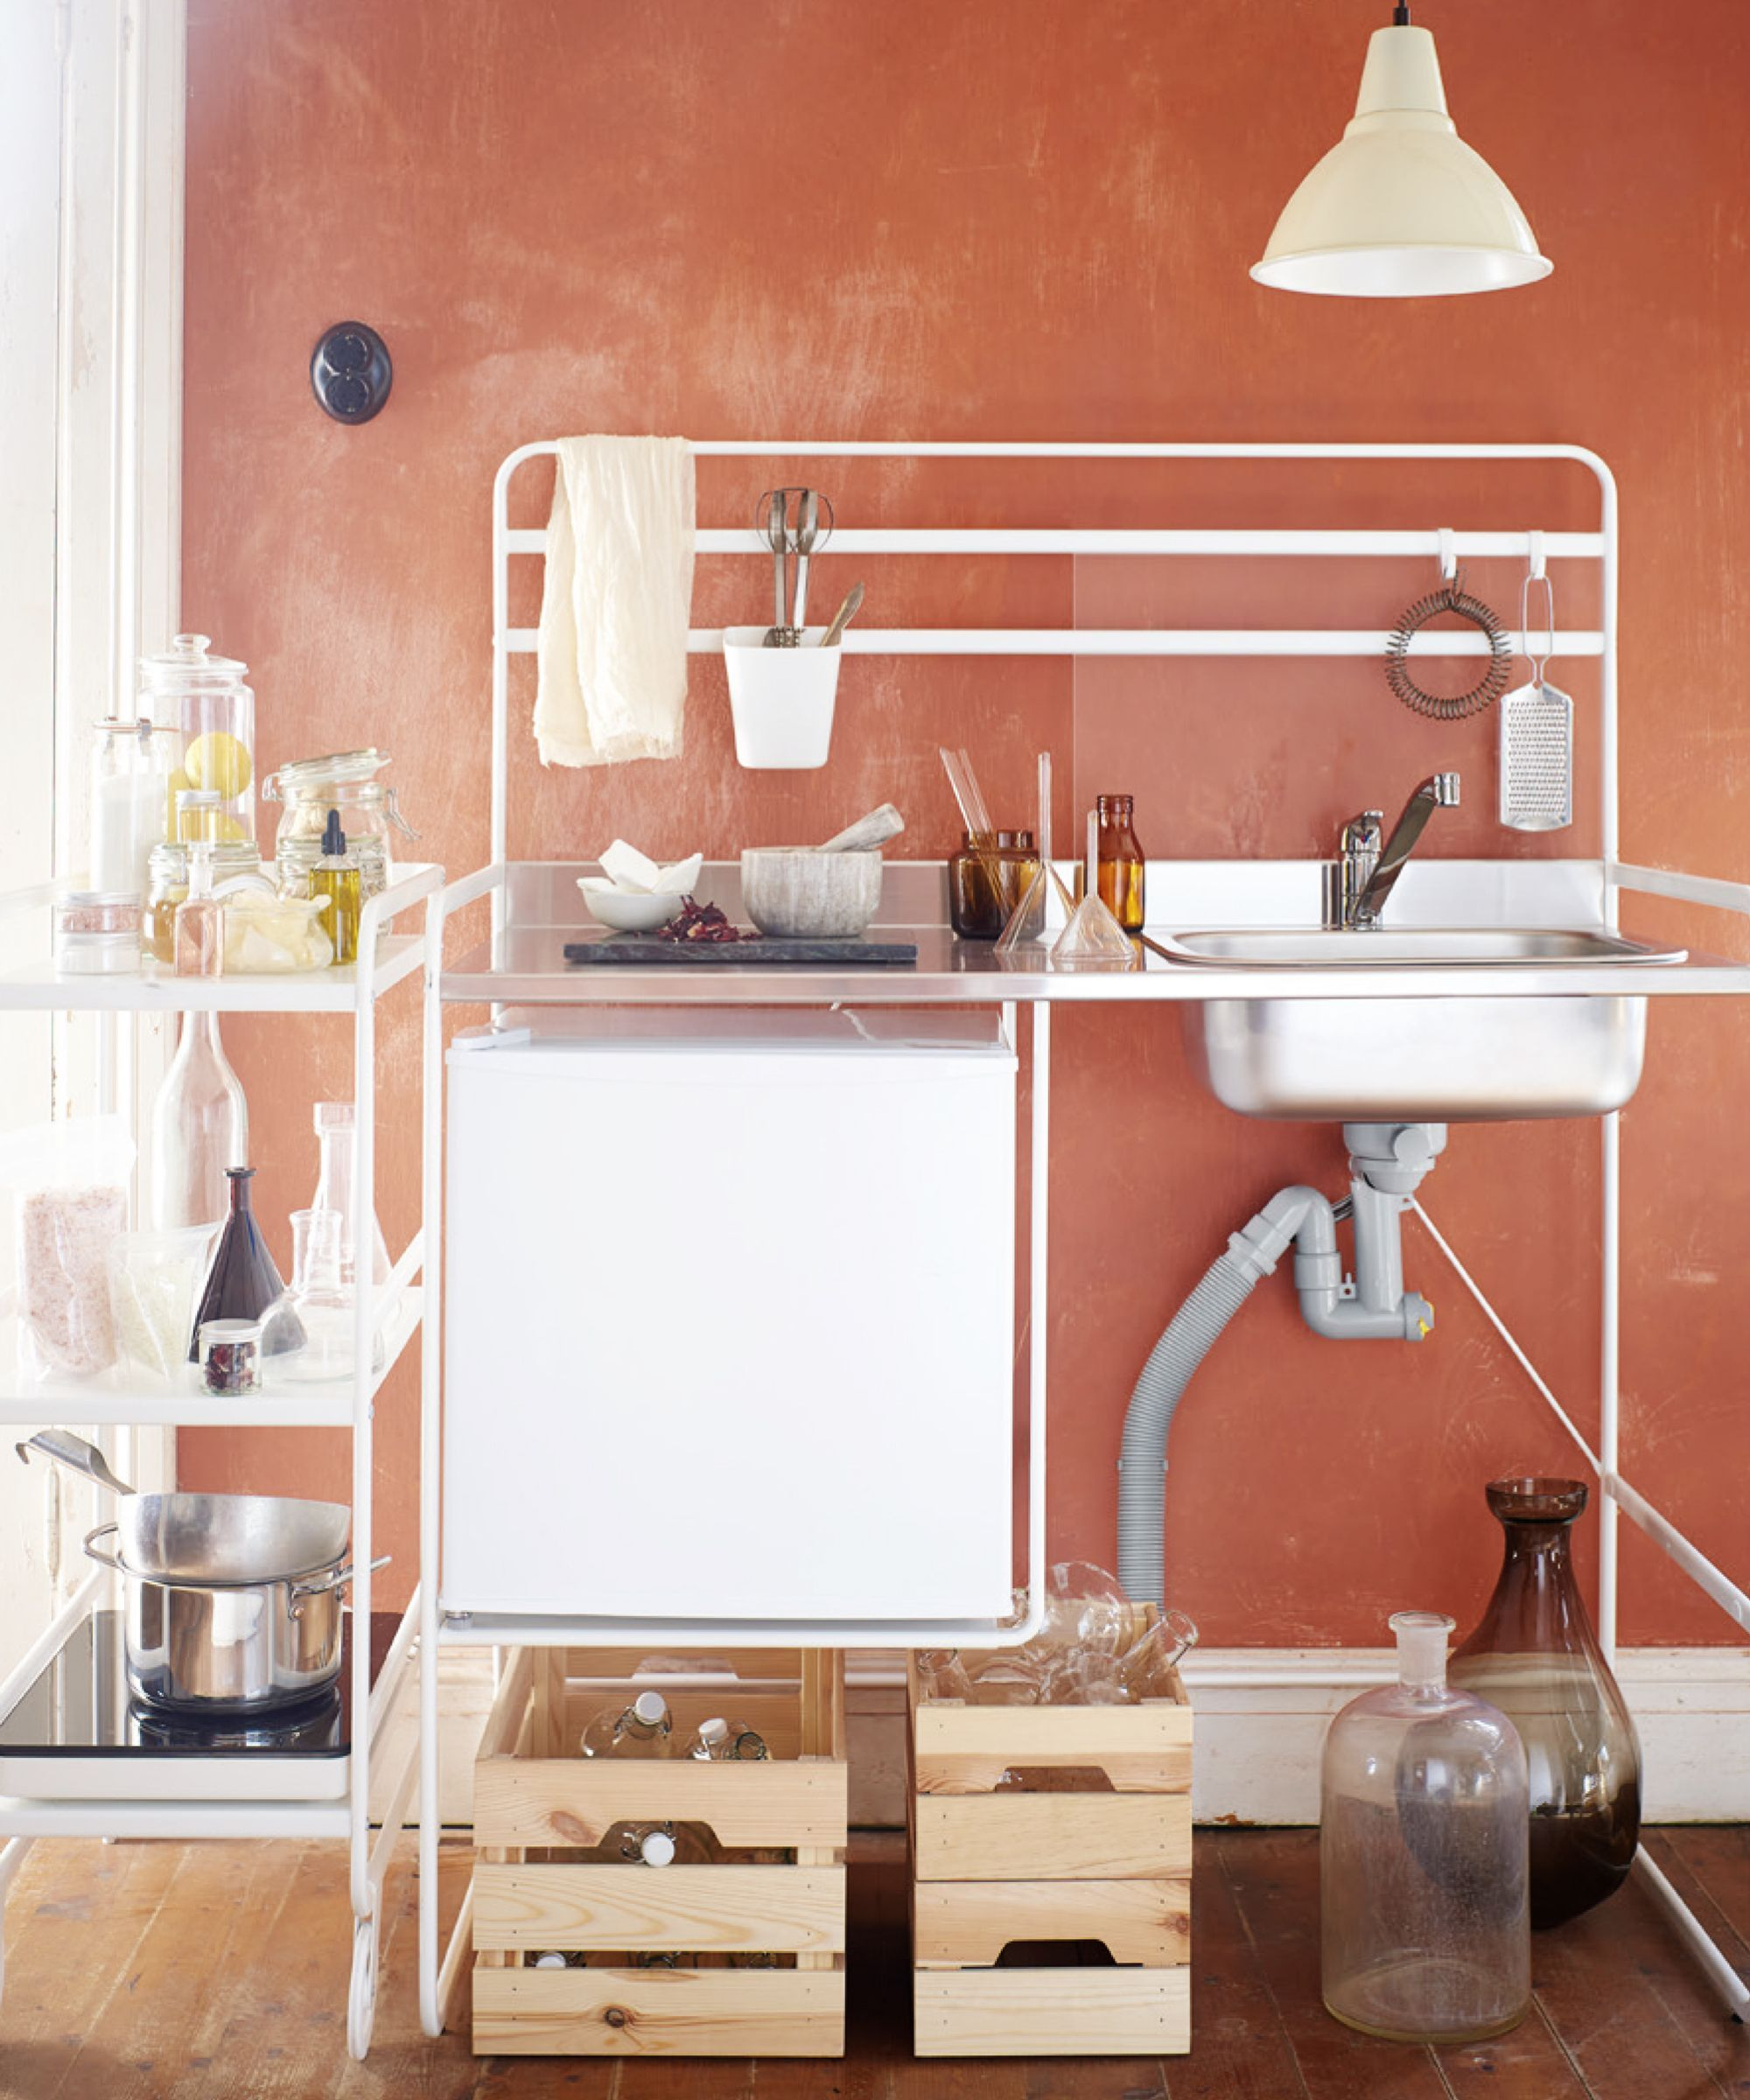 Ikea Küche Miniküche Get An Entire Ikea Mini Kitchen For Just 112 Shay Creative Home